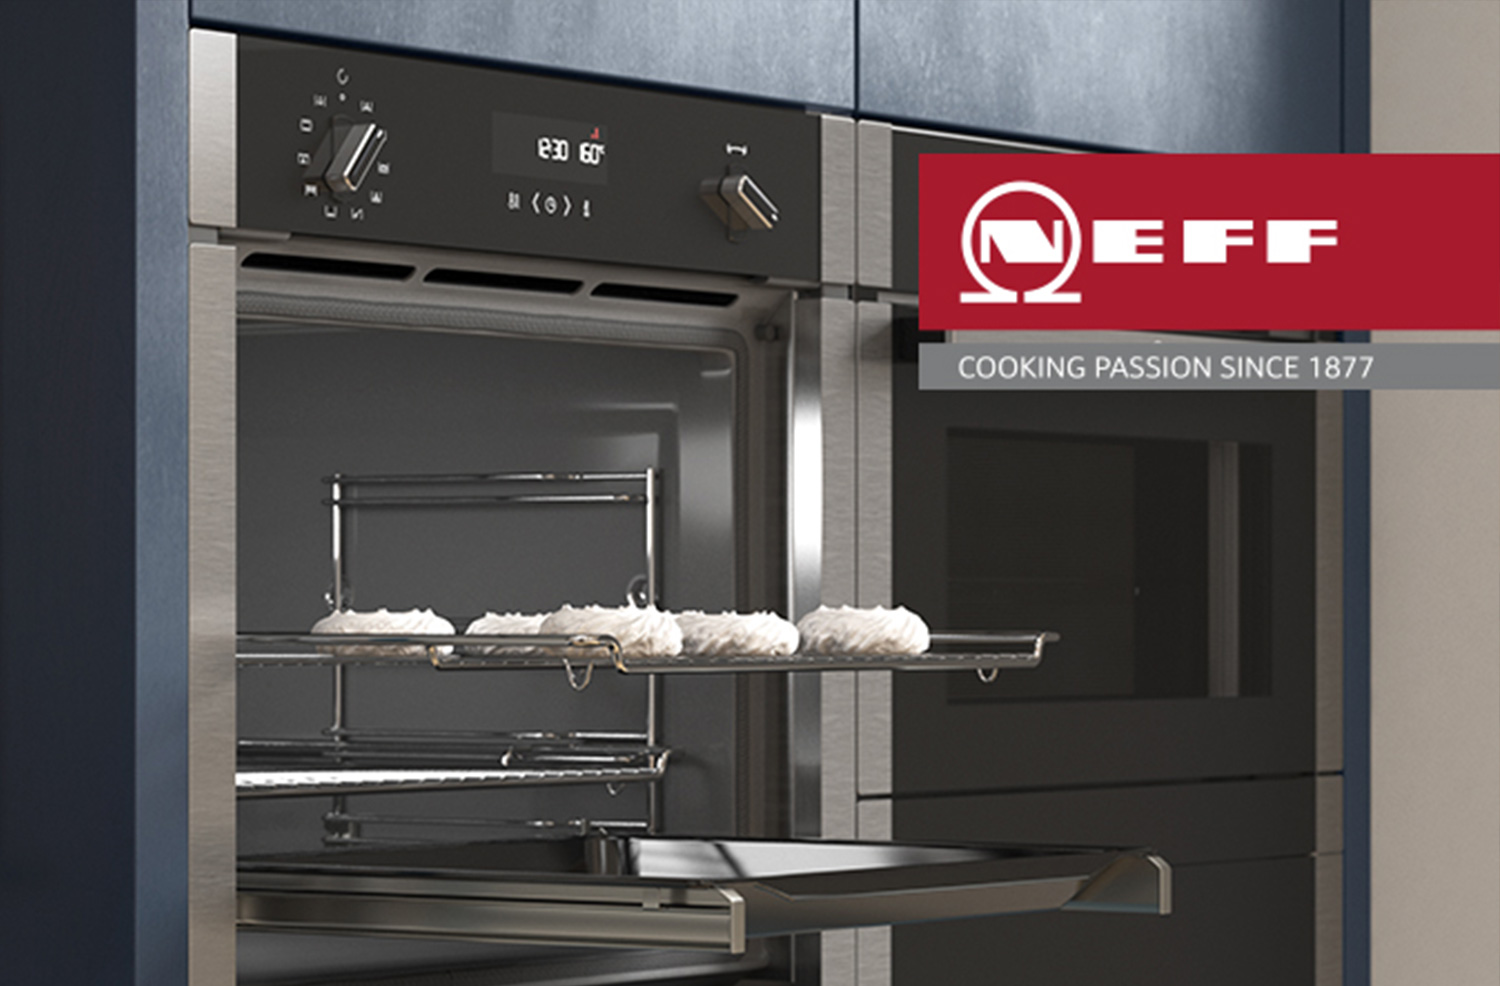 NEFF - Cooking passion since 1877 - Oven